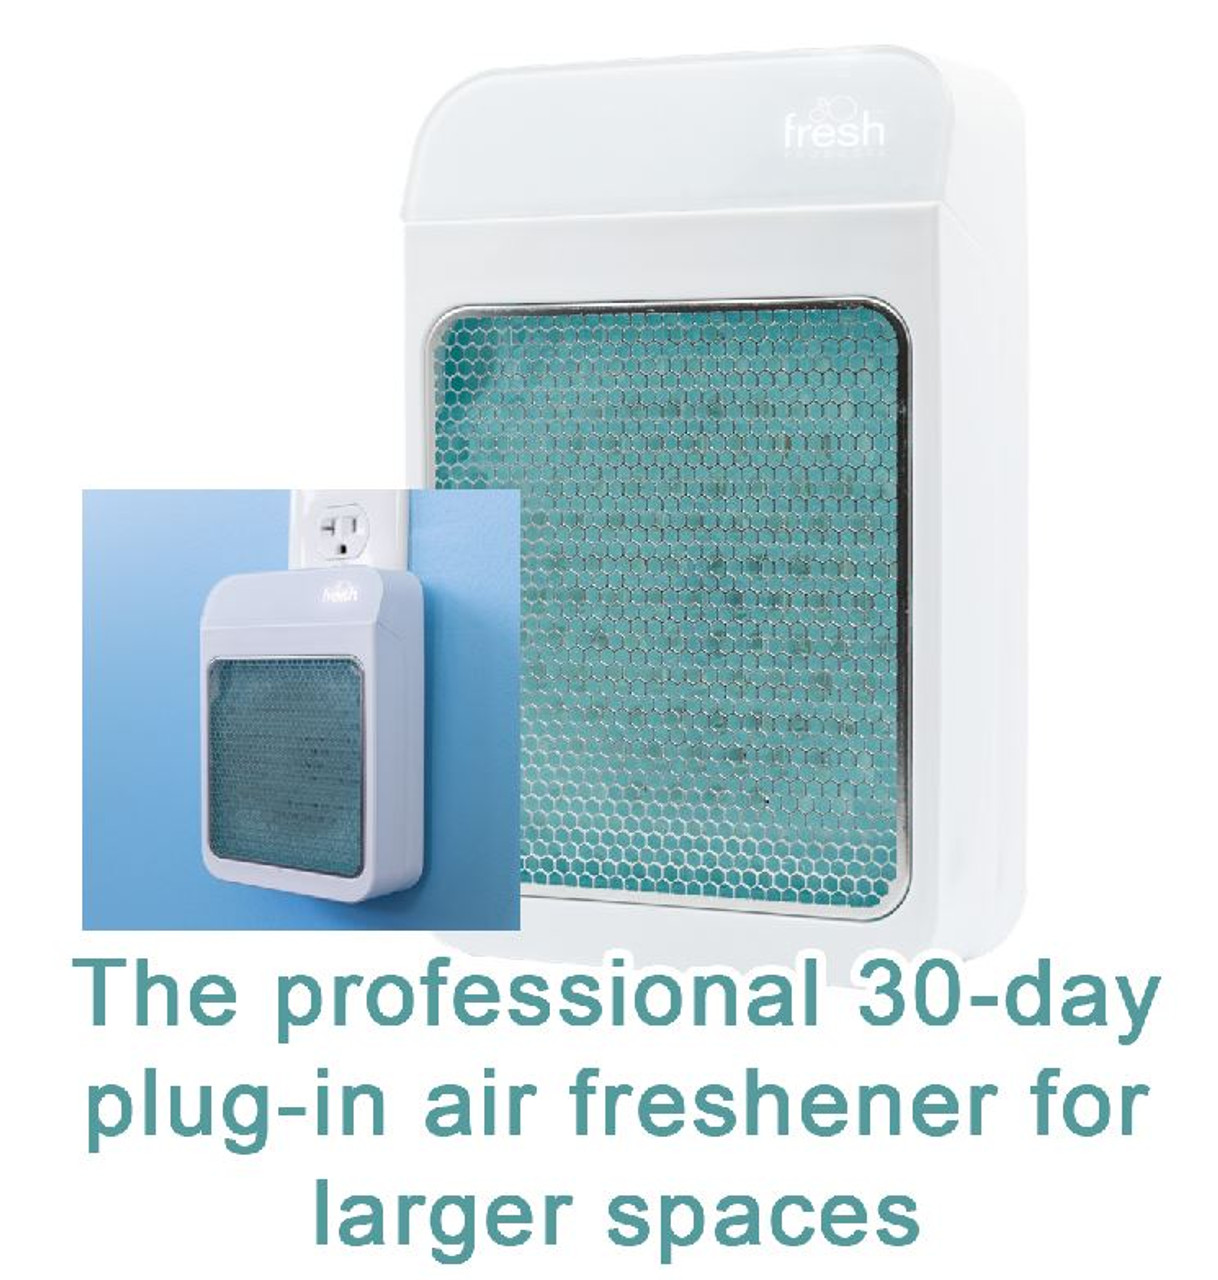 ourfreshe plug-in air freshener for larger rooms